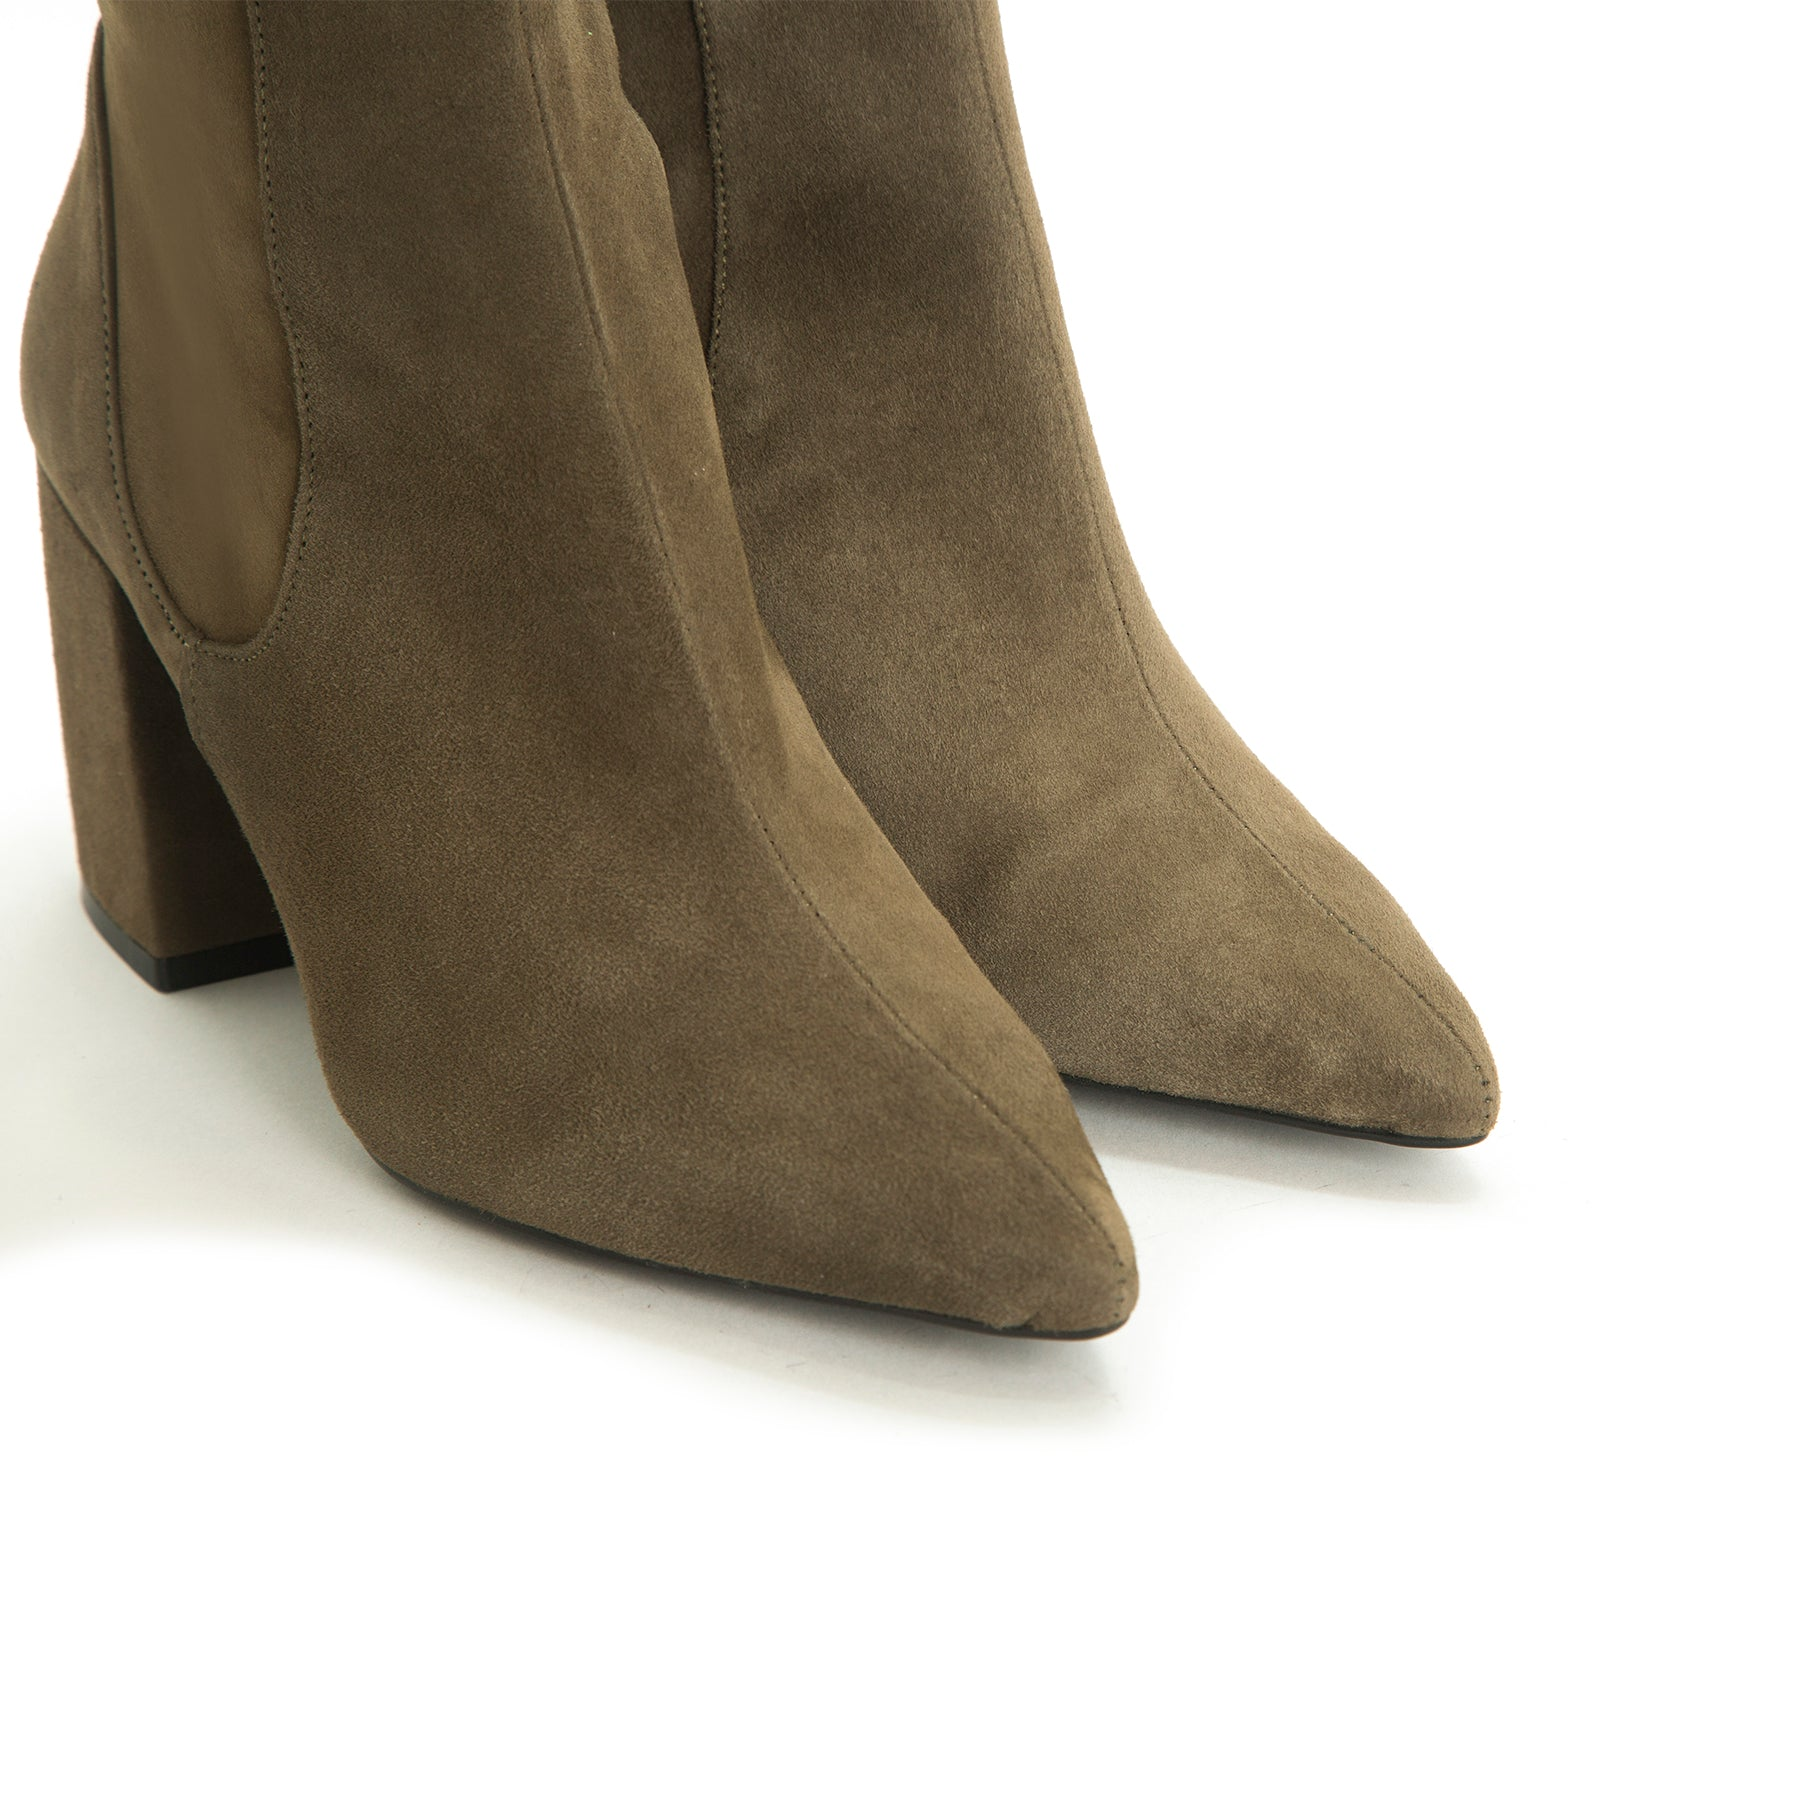 Dametra Khaki Suede - SOLD OUT